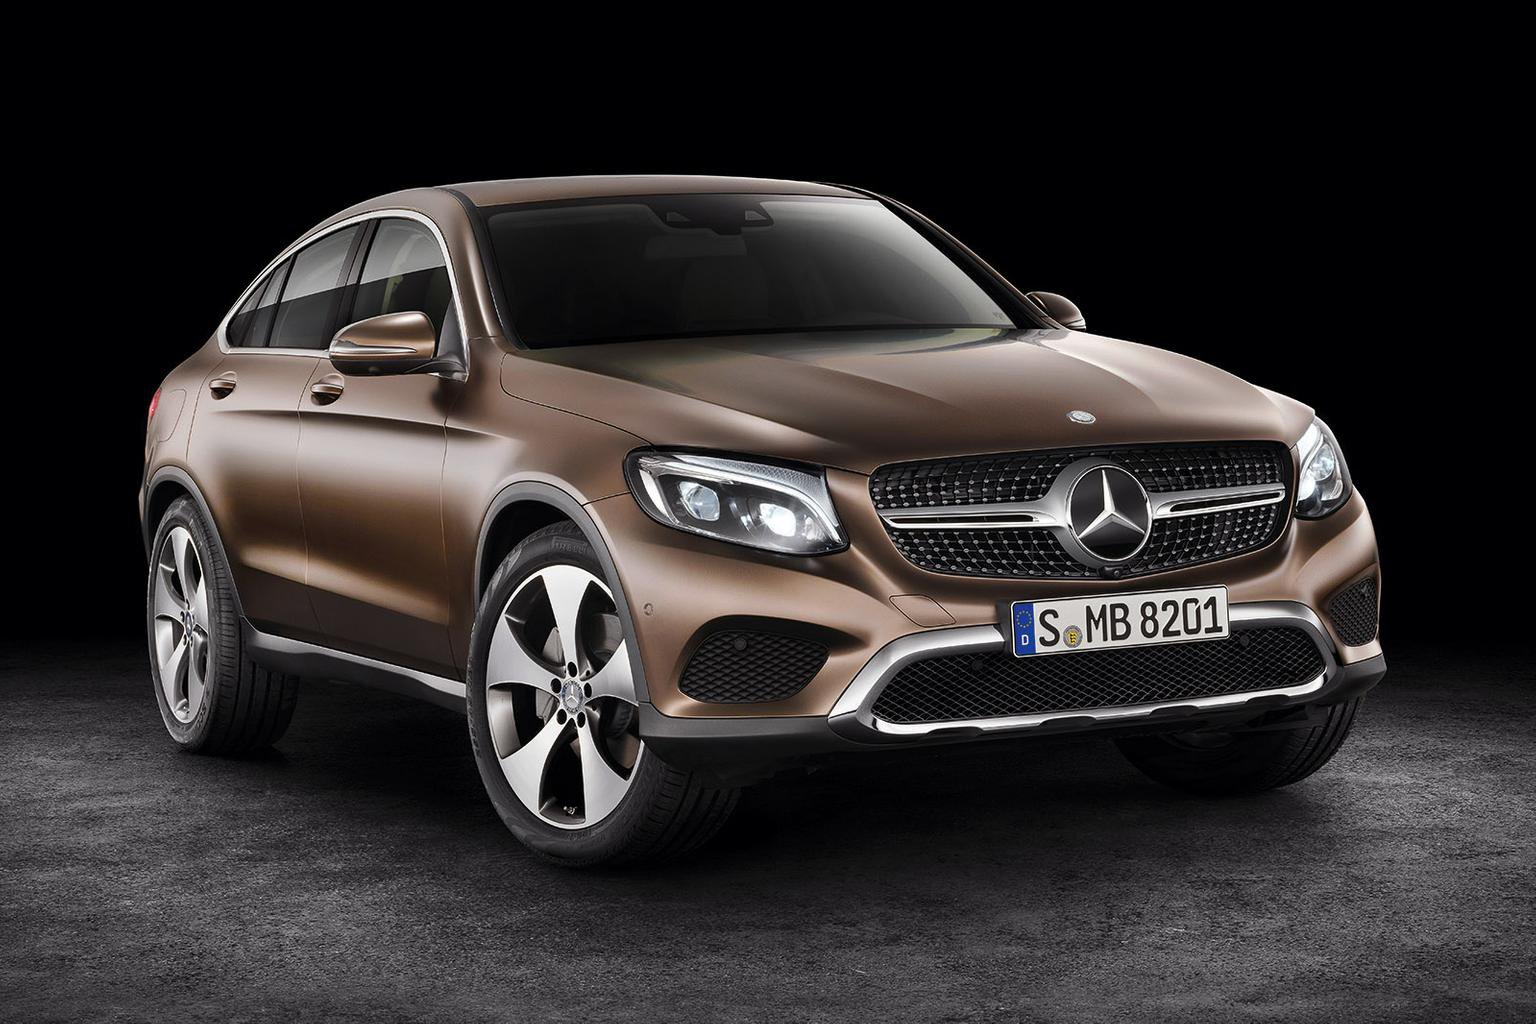 Mercedes-Benz GLC Coup unveiled